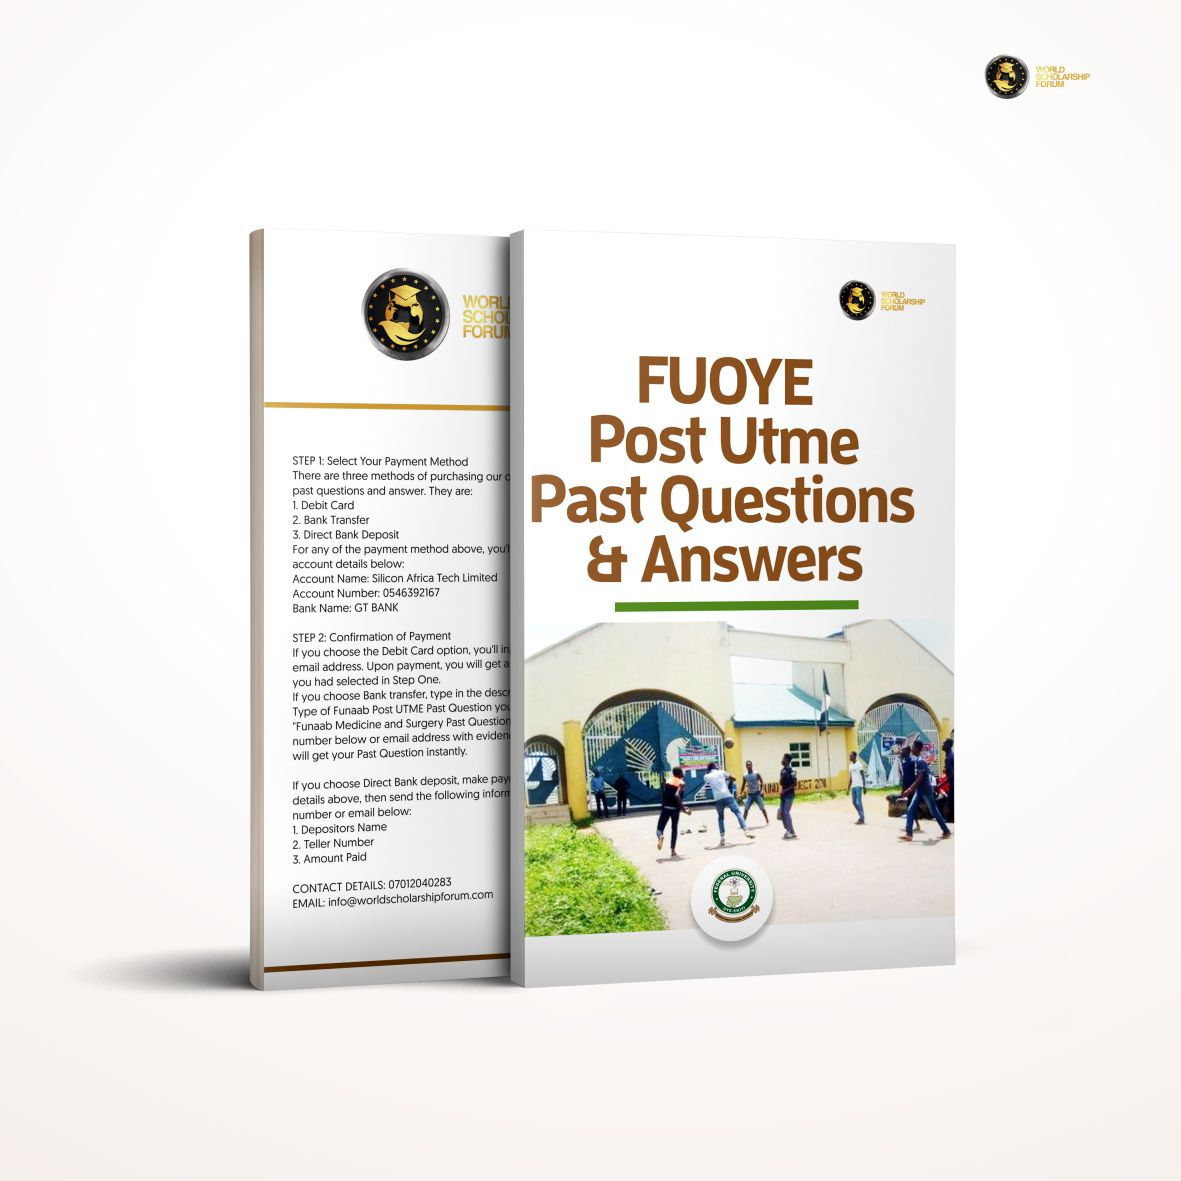 fuoye-post-utme-past-question